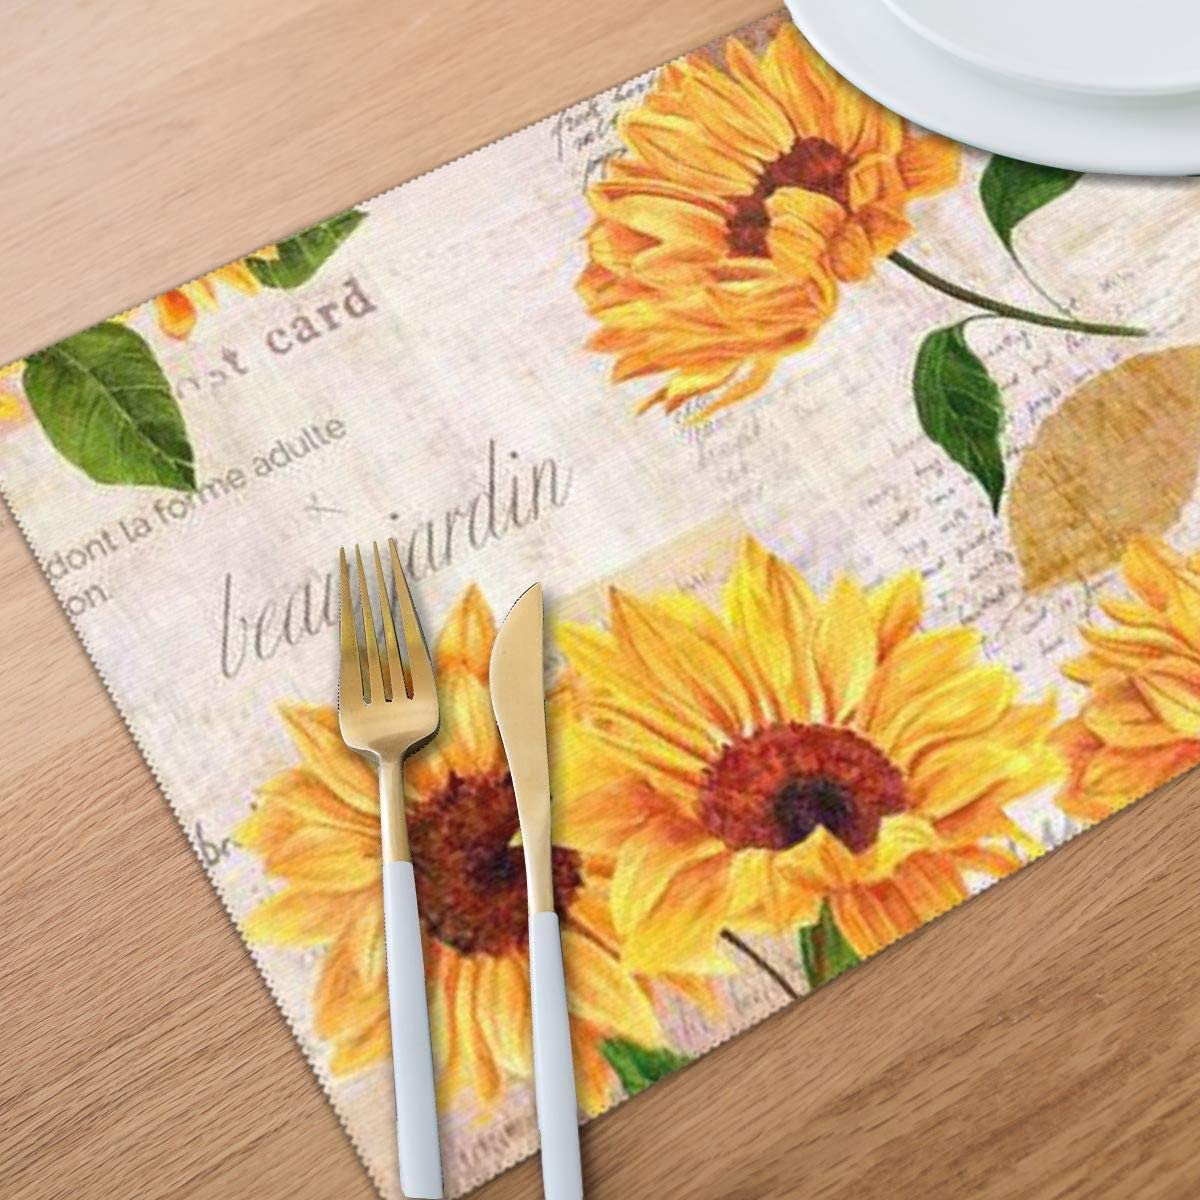 Bghnifs Vibrant Yellow Sunflowers Placemats Table Mats Set of 6 Washable Non Slip Heat Insulation Place Mats Dining Room Kitchen Decor 12 X 18